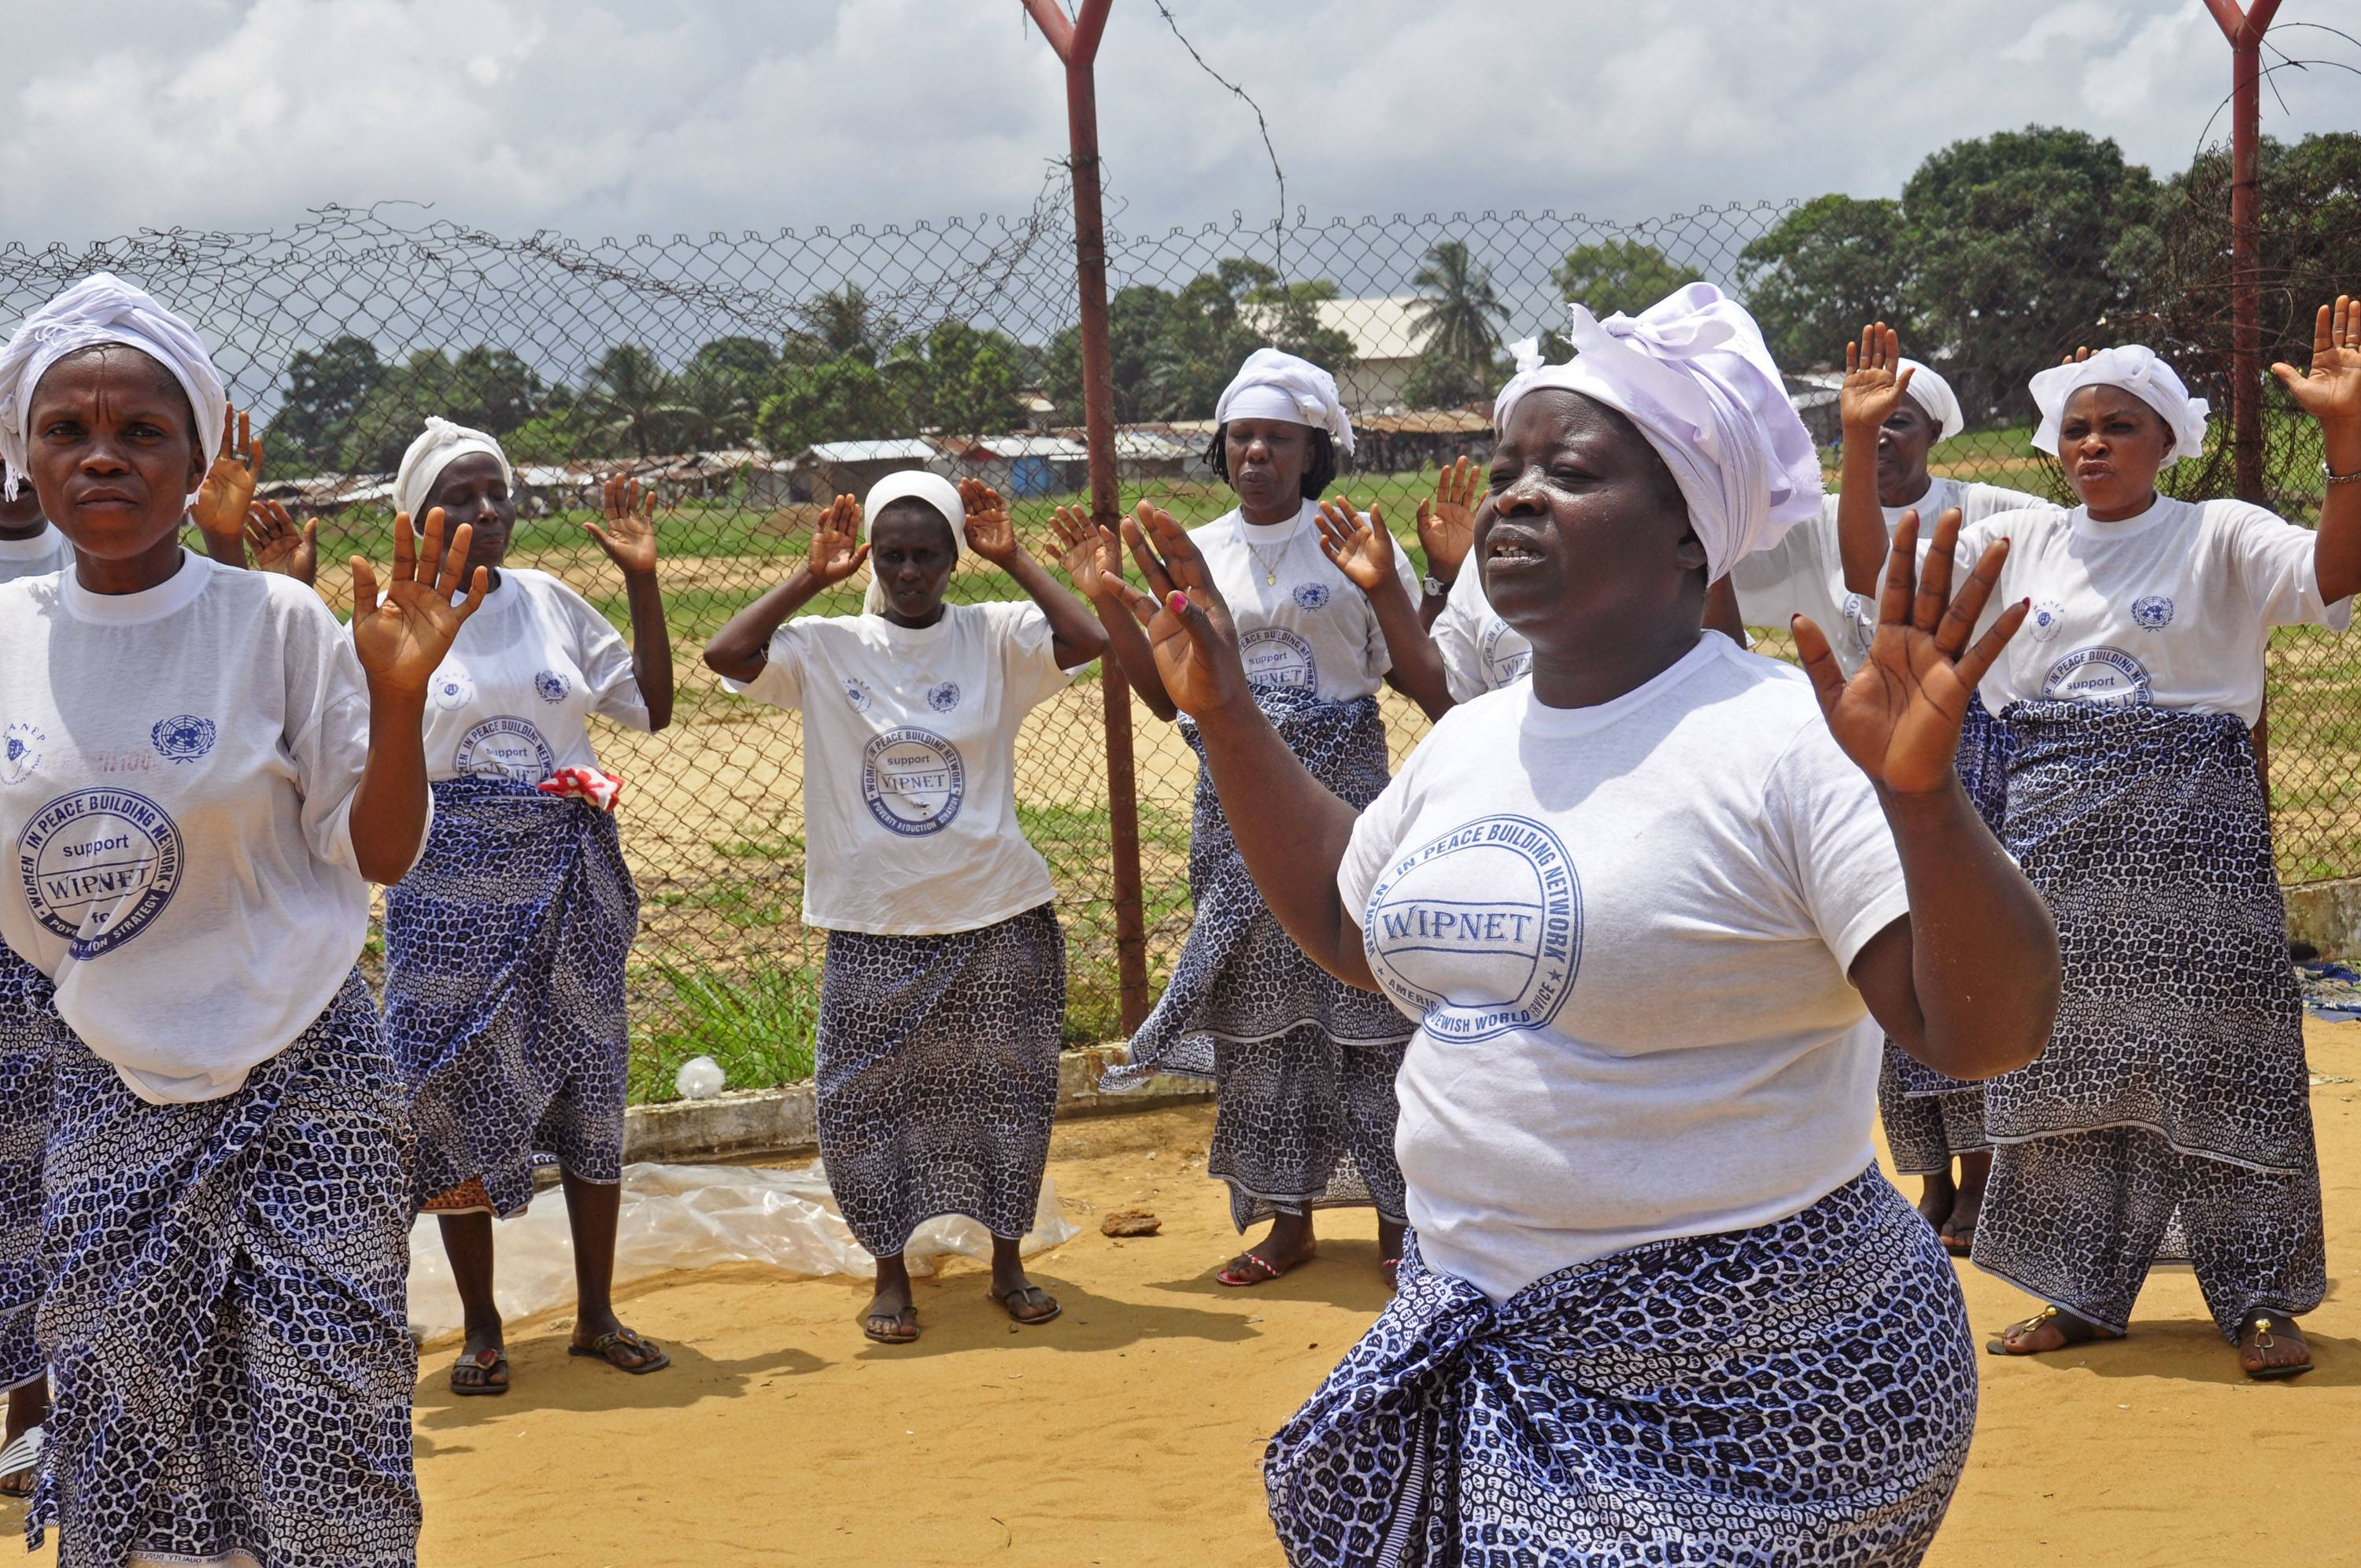 Women from different religious groups in Monrovia, Liberia, pray Saturday against the spread of the Ebola virus. An Ebola outbreak that has killed more than 700 people in West Africa is moving faster than efforts to control the disease, the head of the World Health Organization warned as presidents from the affected countries met Friday in Guinea's capital.